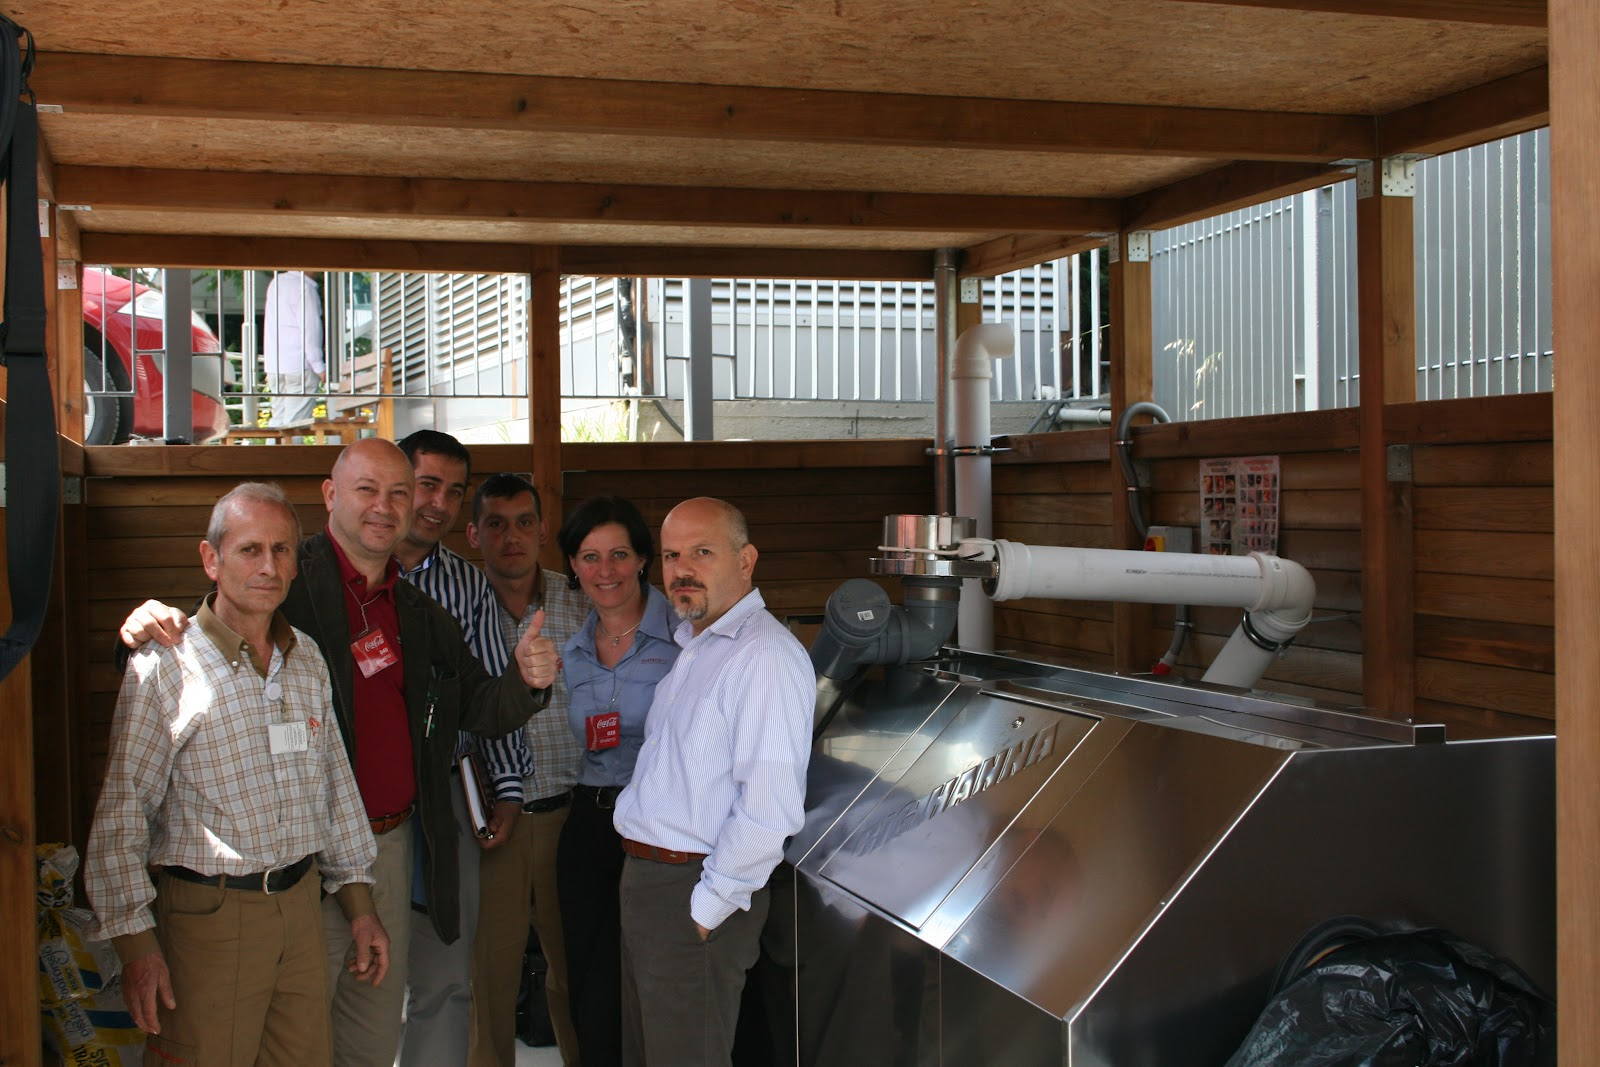 Big Hanna Composter installed at the Coca-Cola Company Headquarter